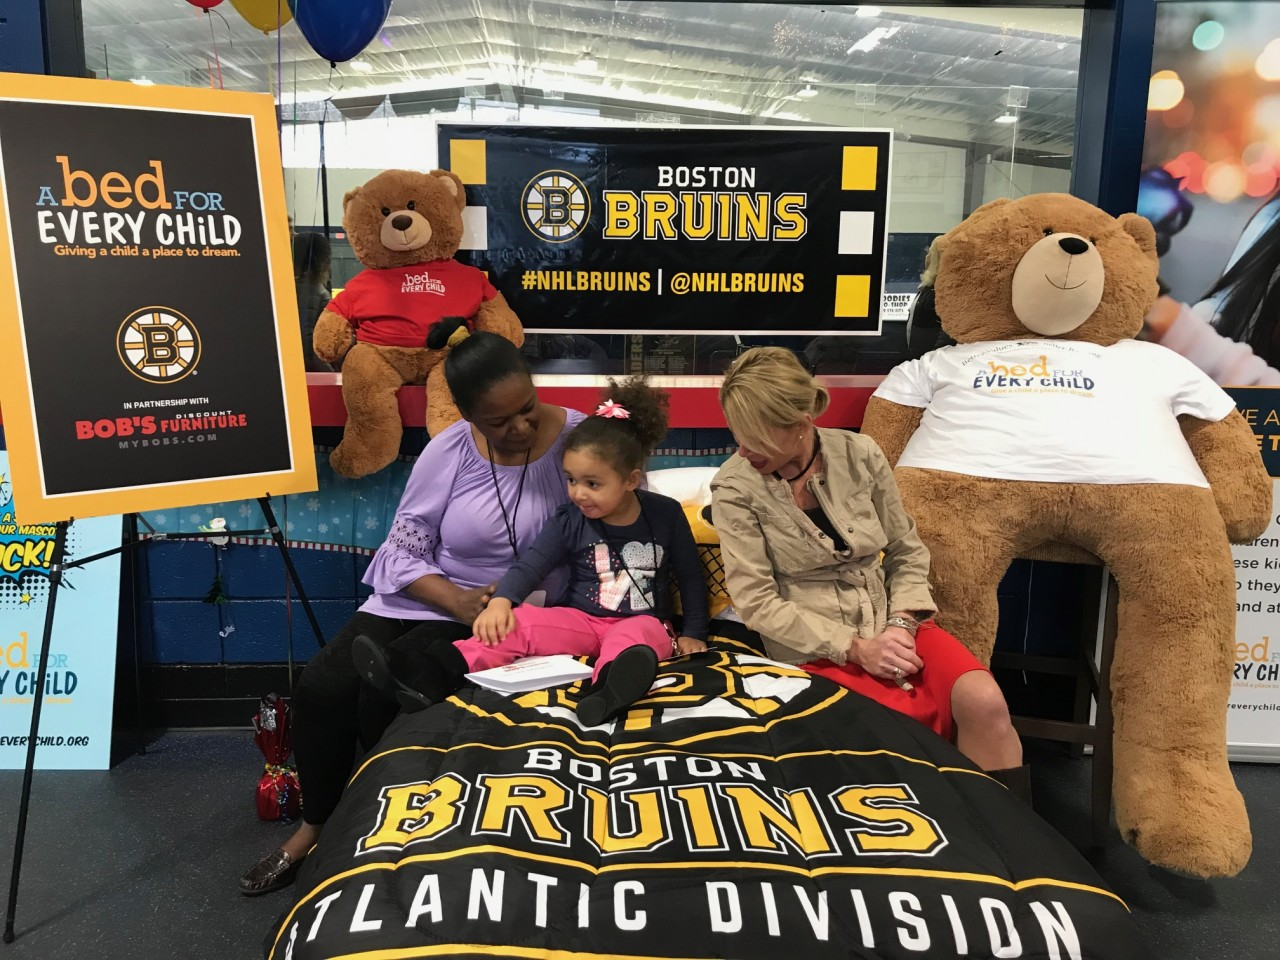 Dreaming Big: Bob's Discount Furniture and the Boston Bruins Partner for A Bed for Every Child